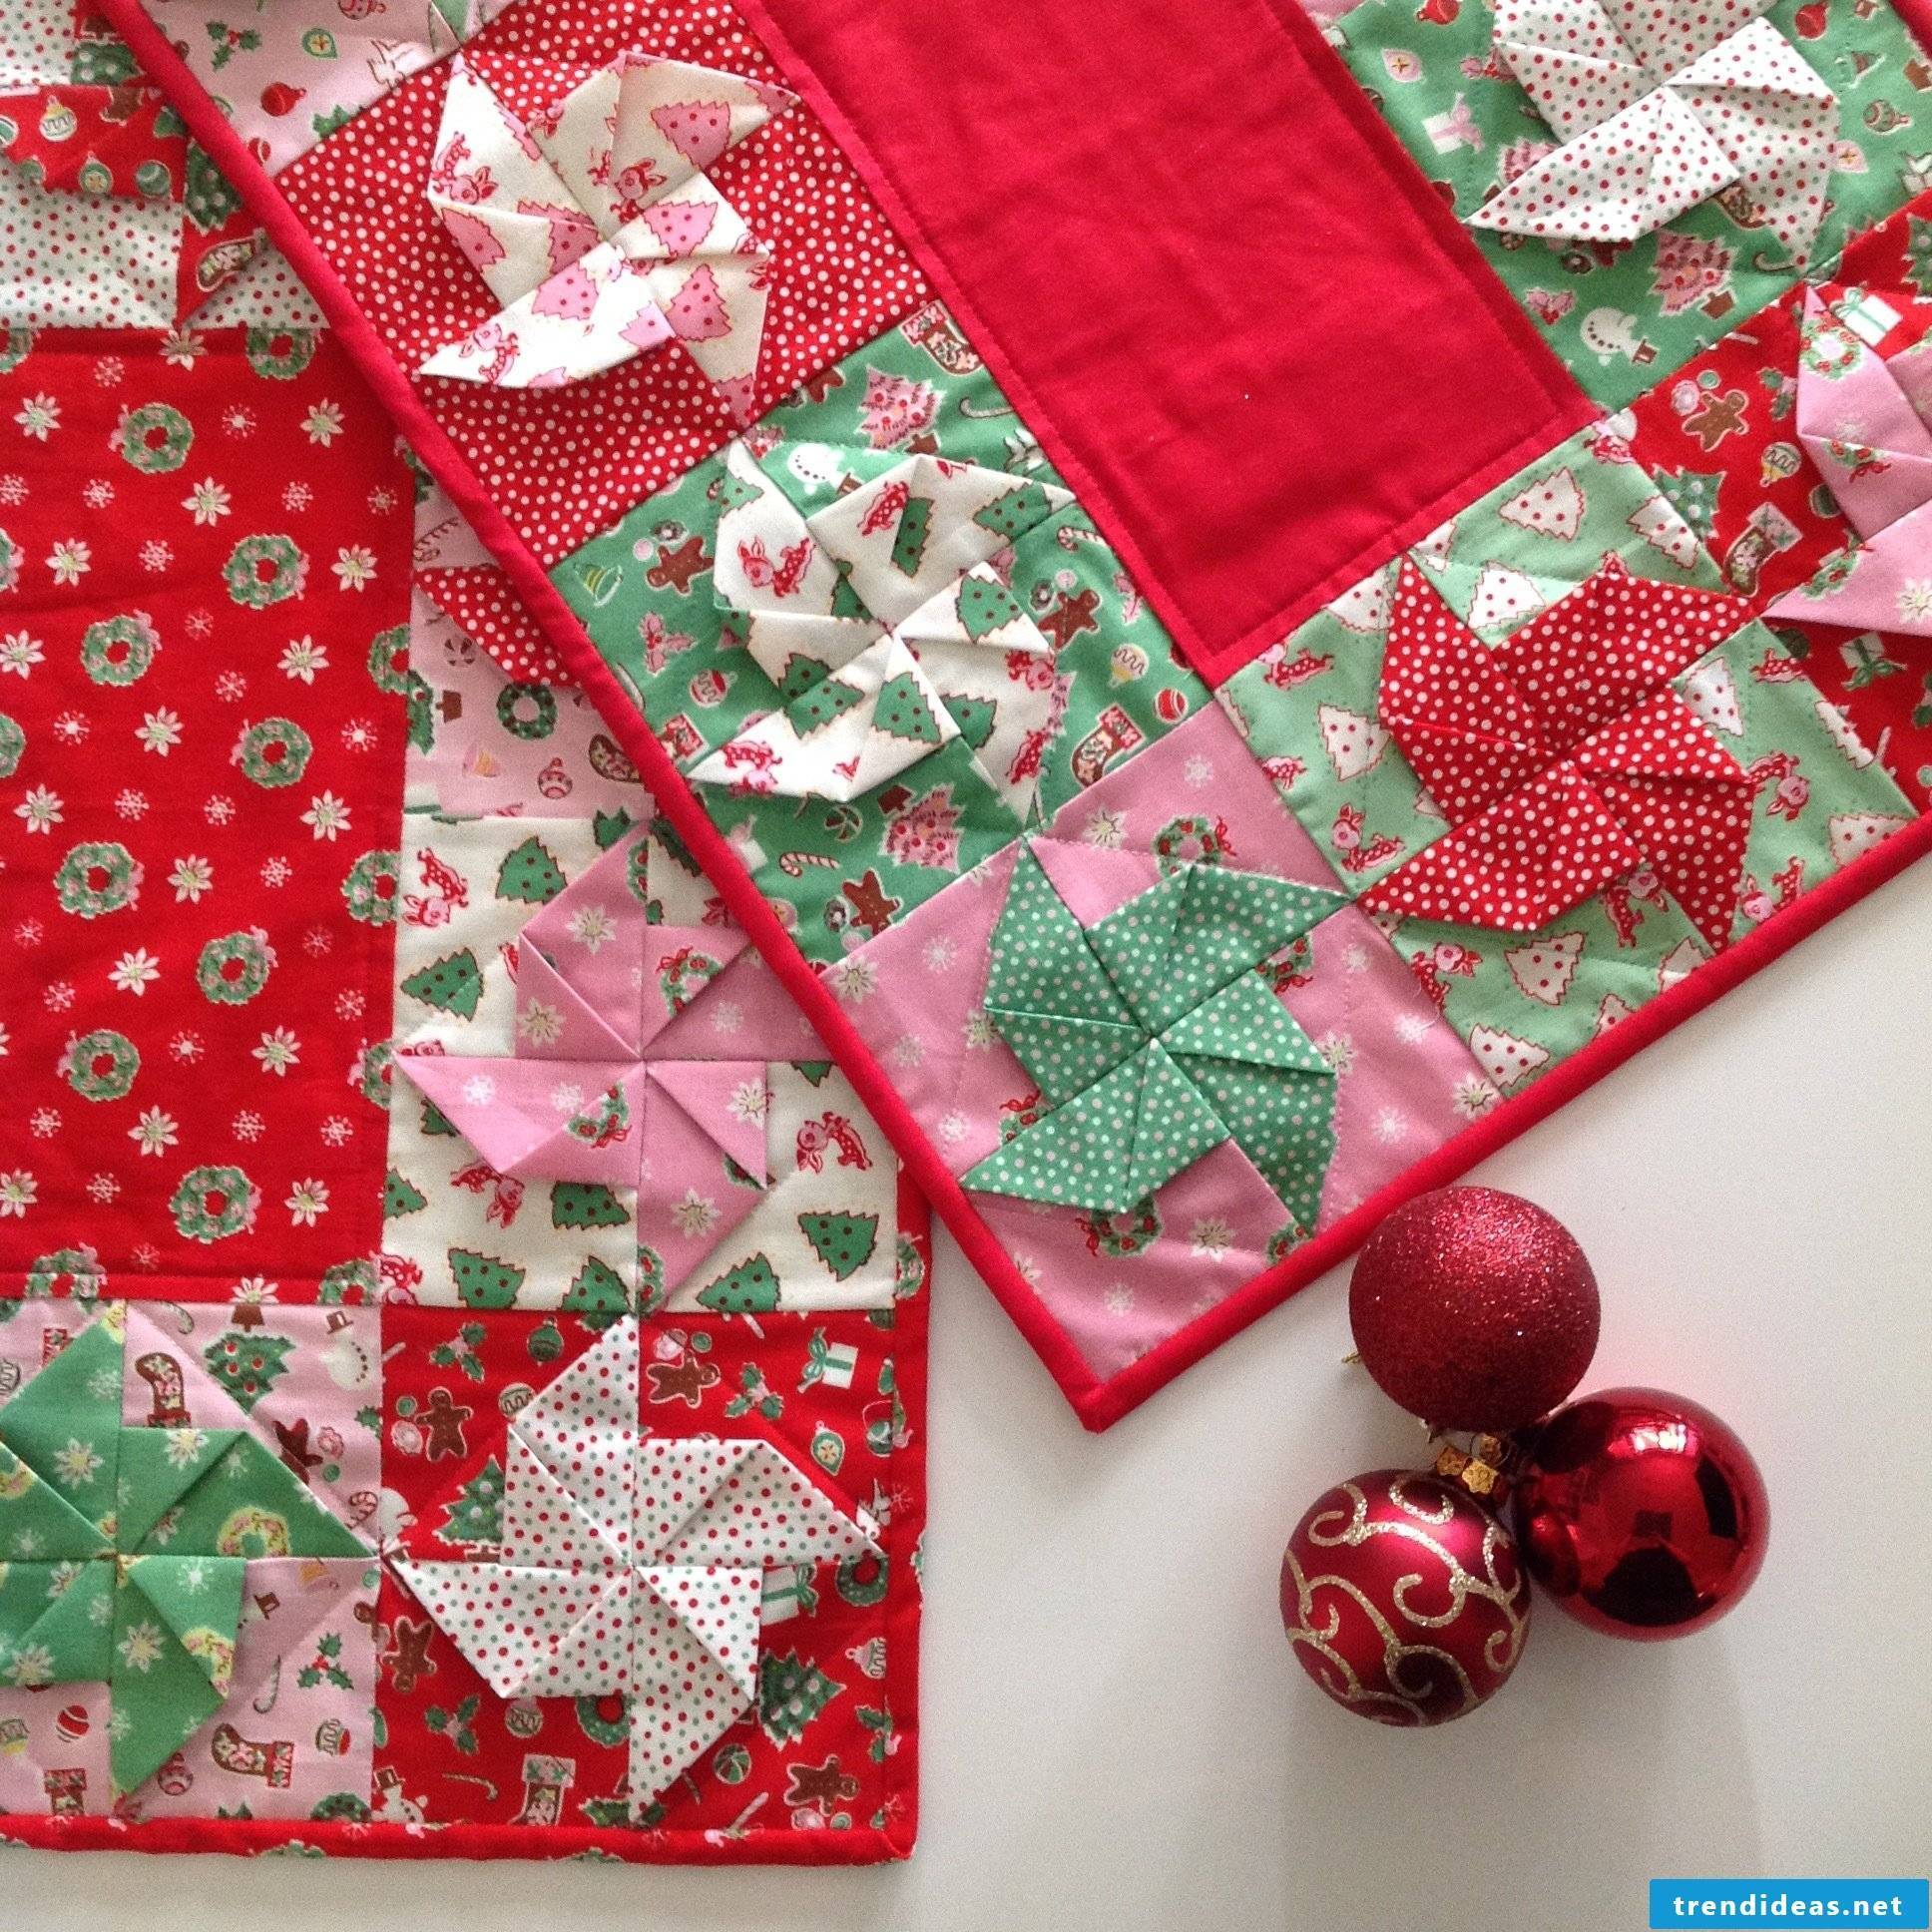 Sewing table runners for Christmas - instructions